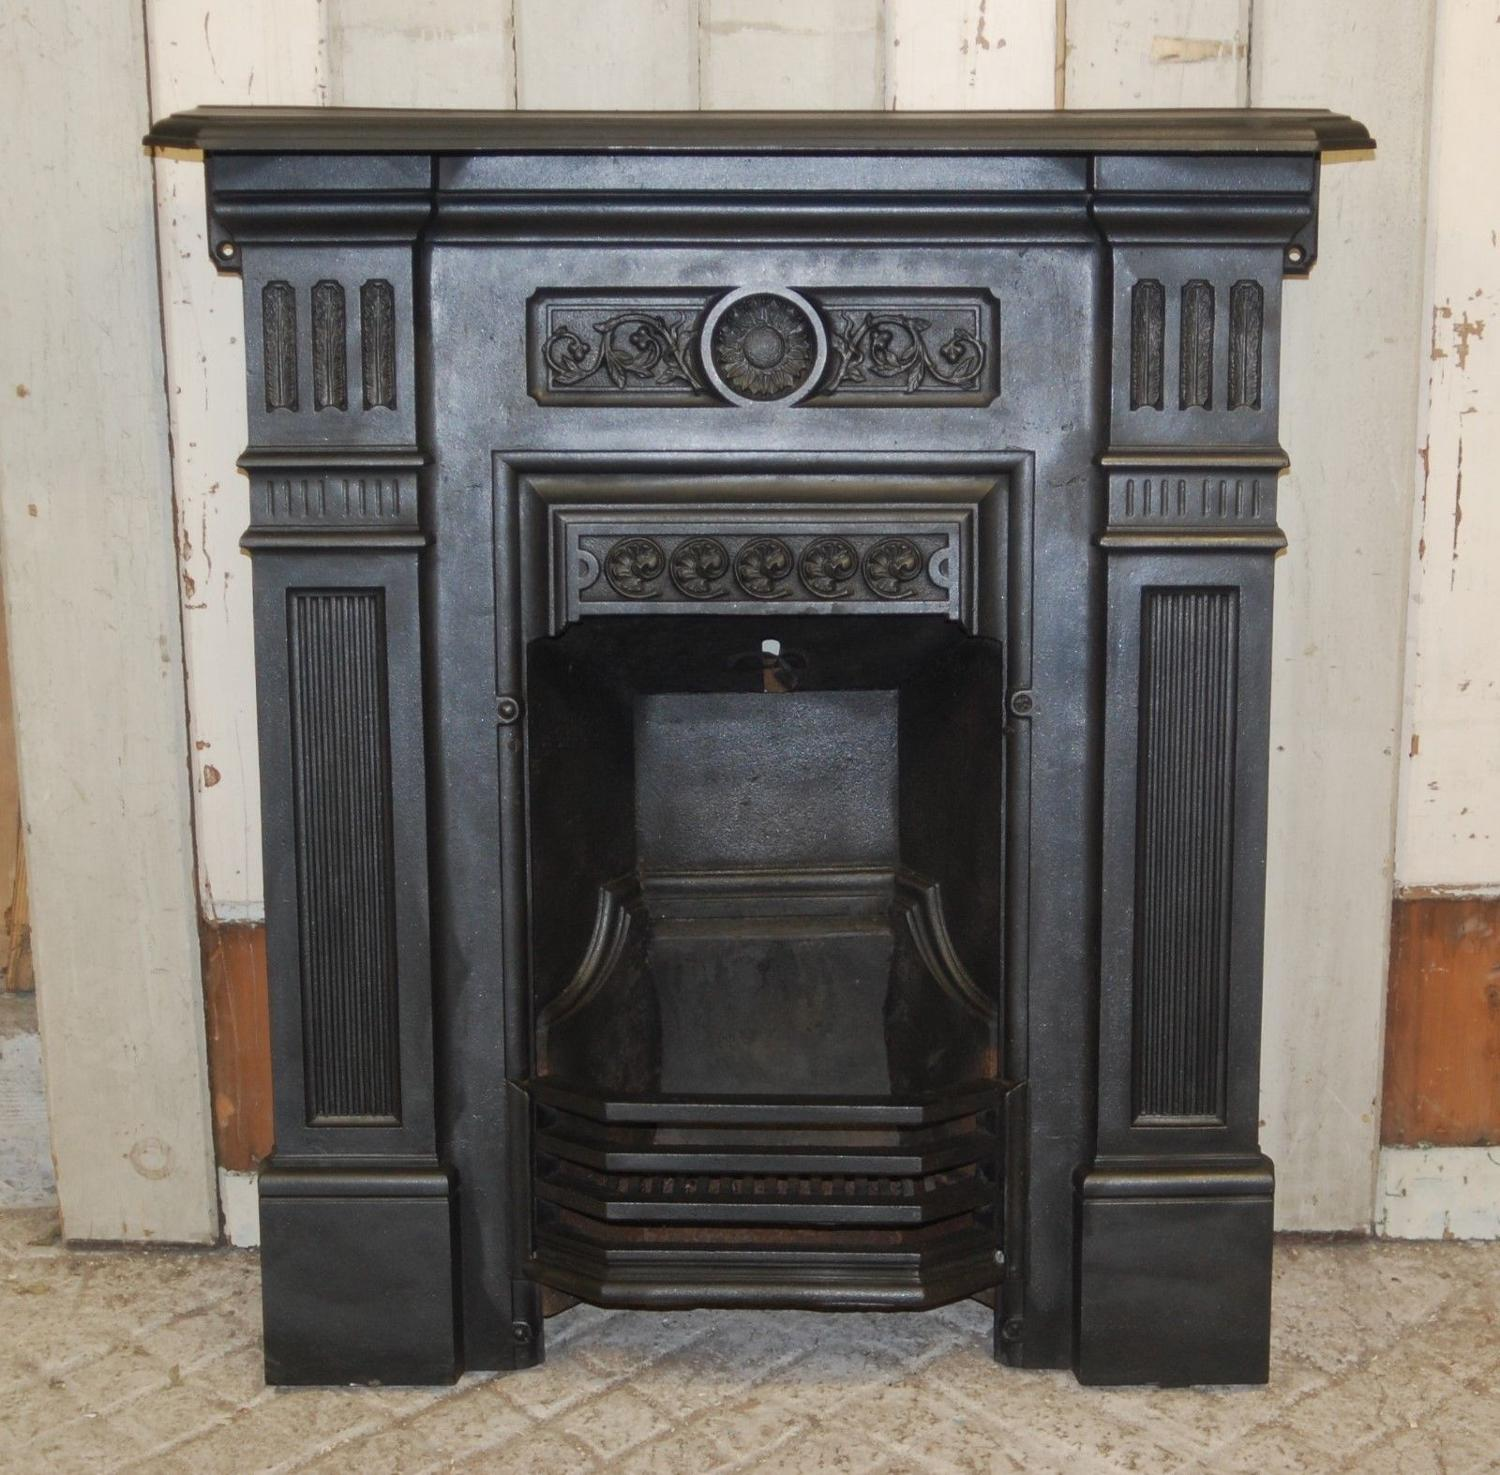 FC0031 ATTRACTIVE LATE VICTORIAN CAST IRON COMBINATION FIRE